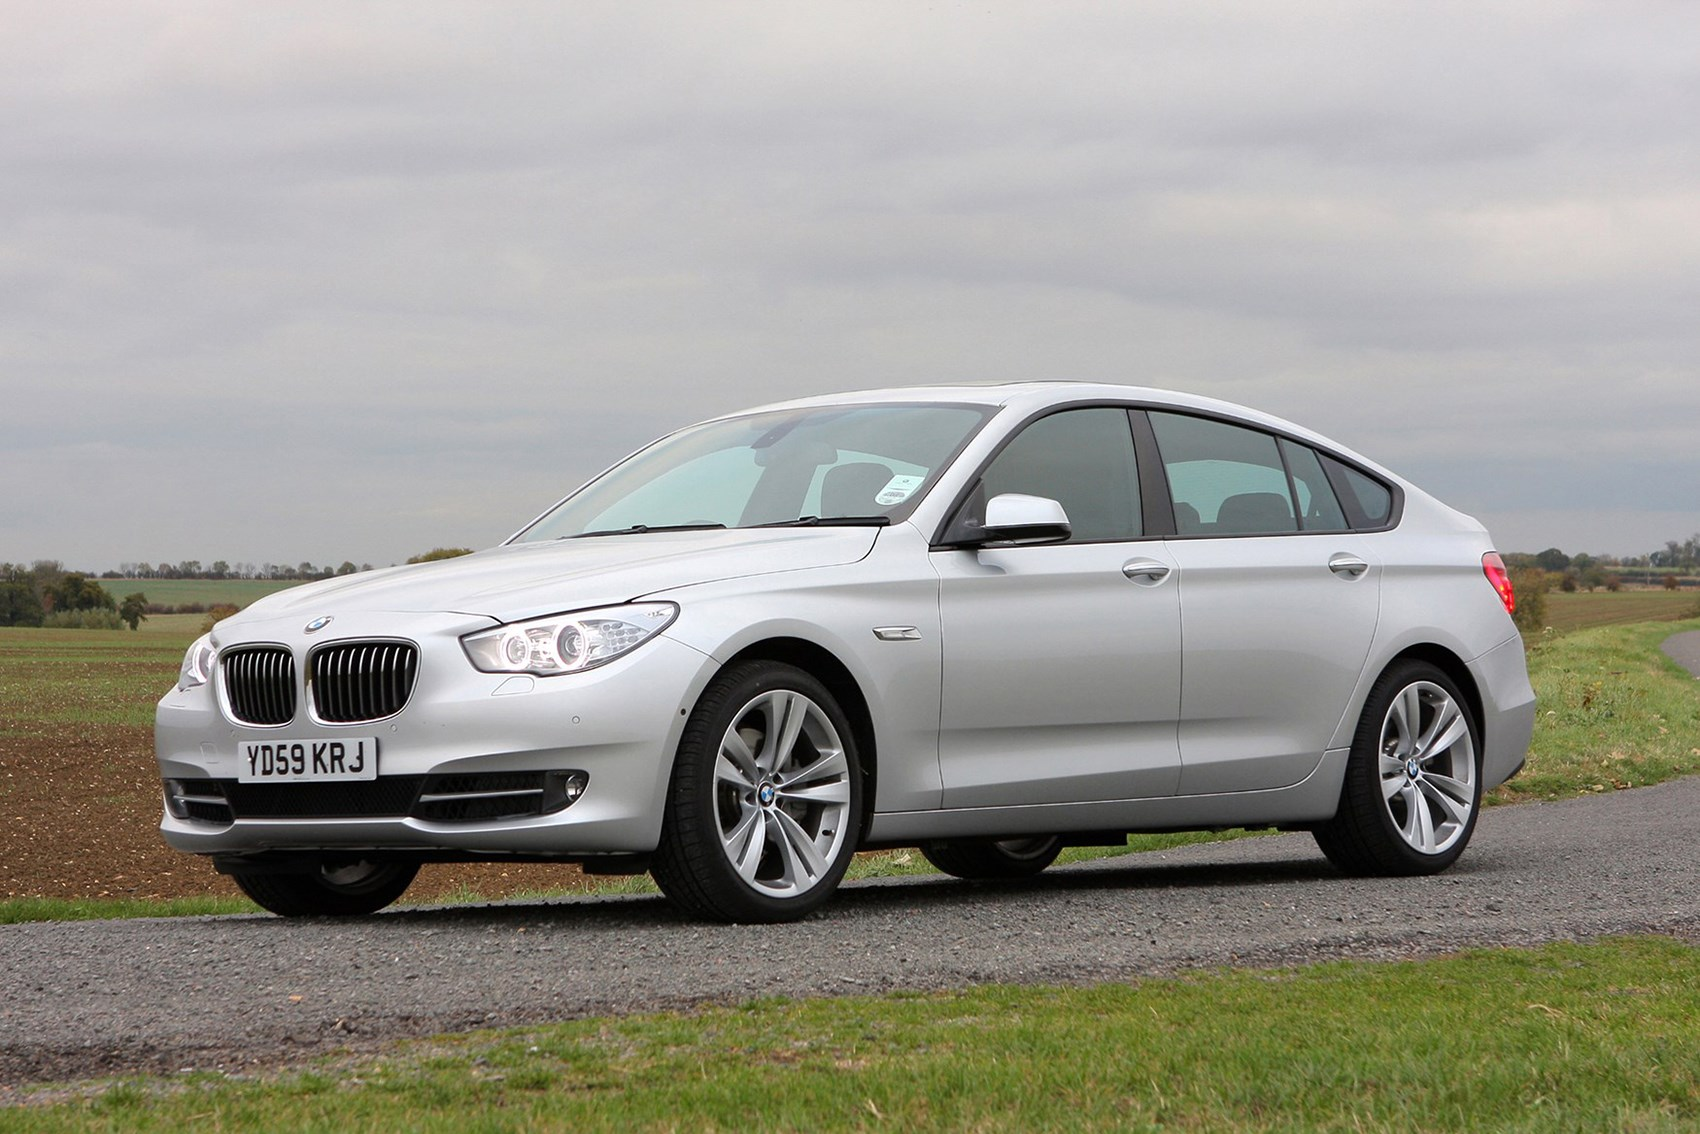 BMW 5 Series Gran Turismo - best towing cars reviews